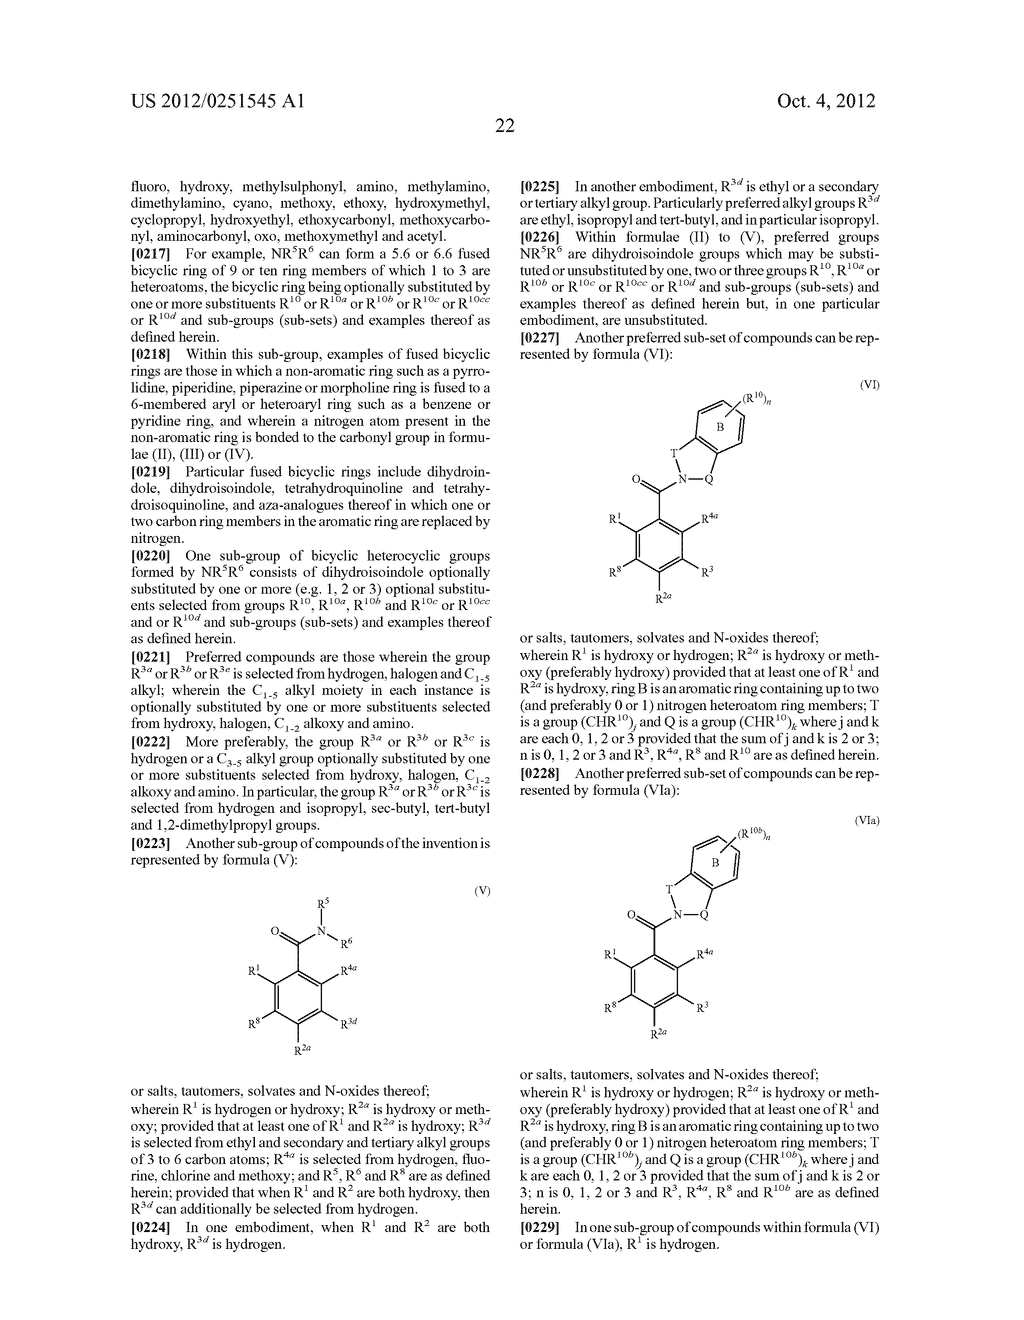 Therapeutic Combinations Of Hydroxybenzamide Derivatives As Inhibitors Of     HSP90 - diagram, schematic, and image 23